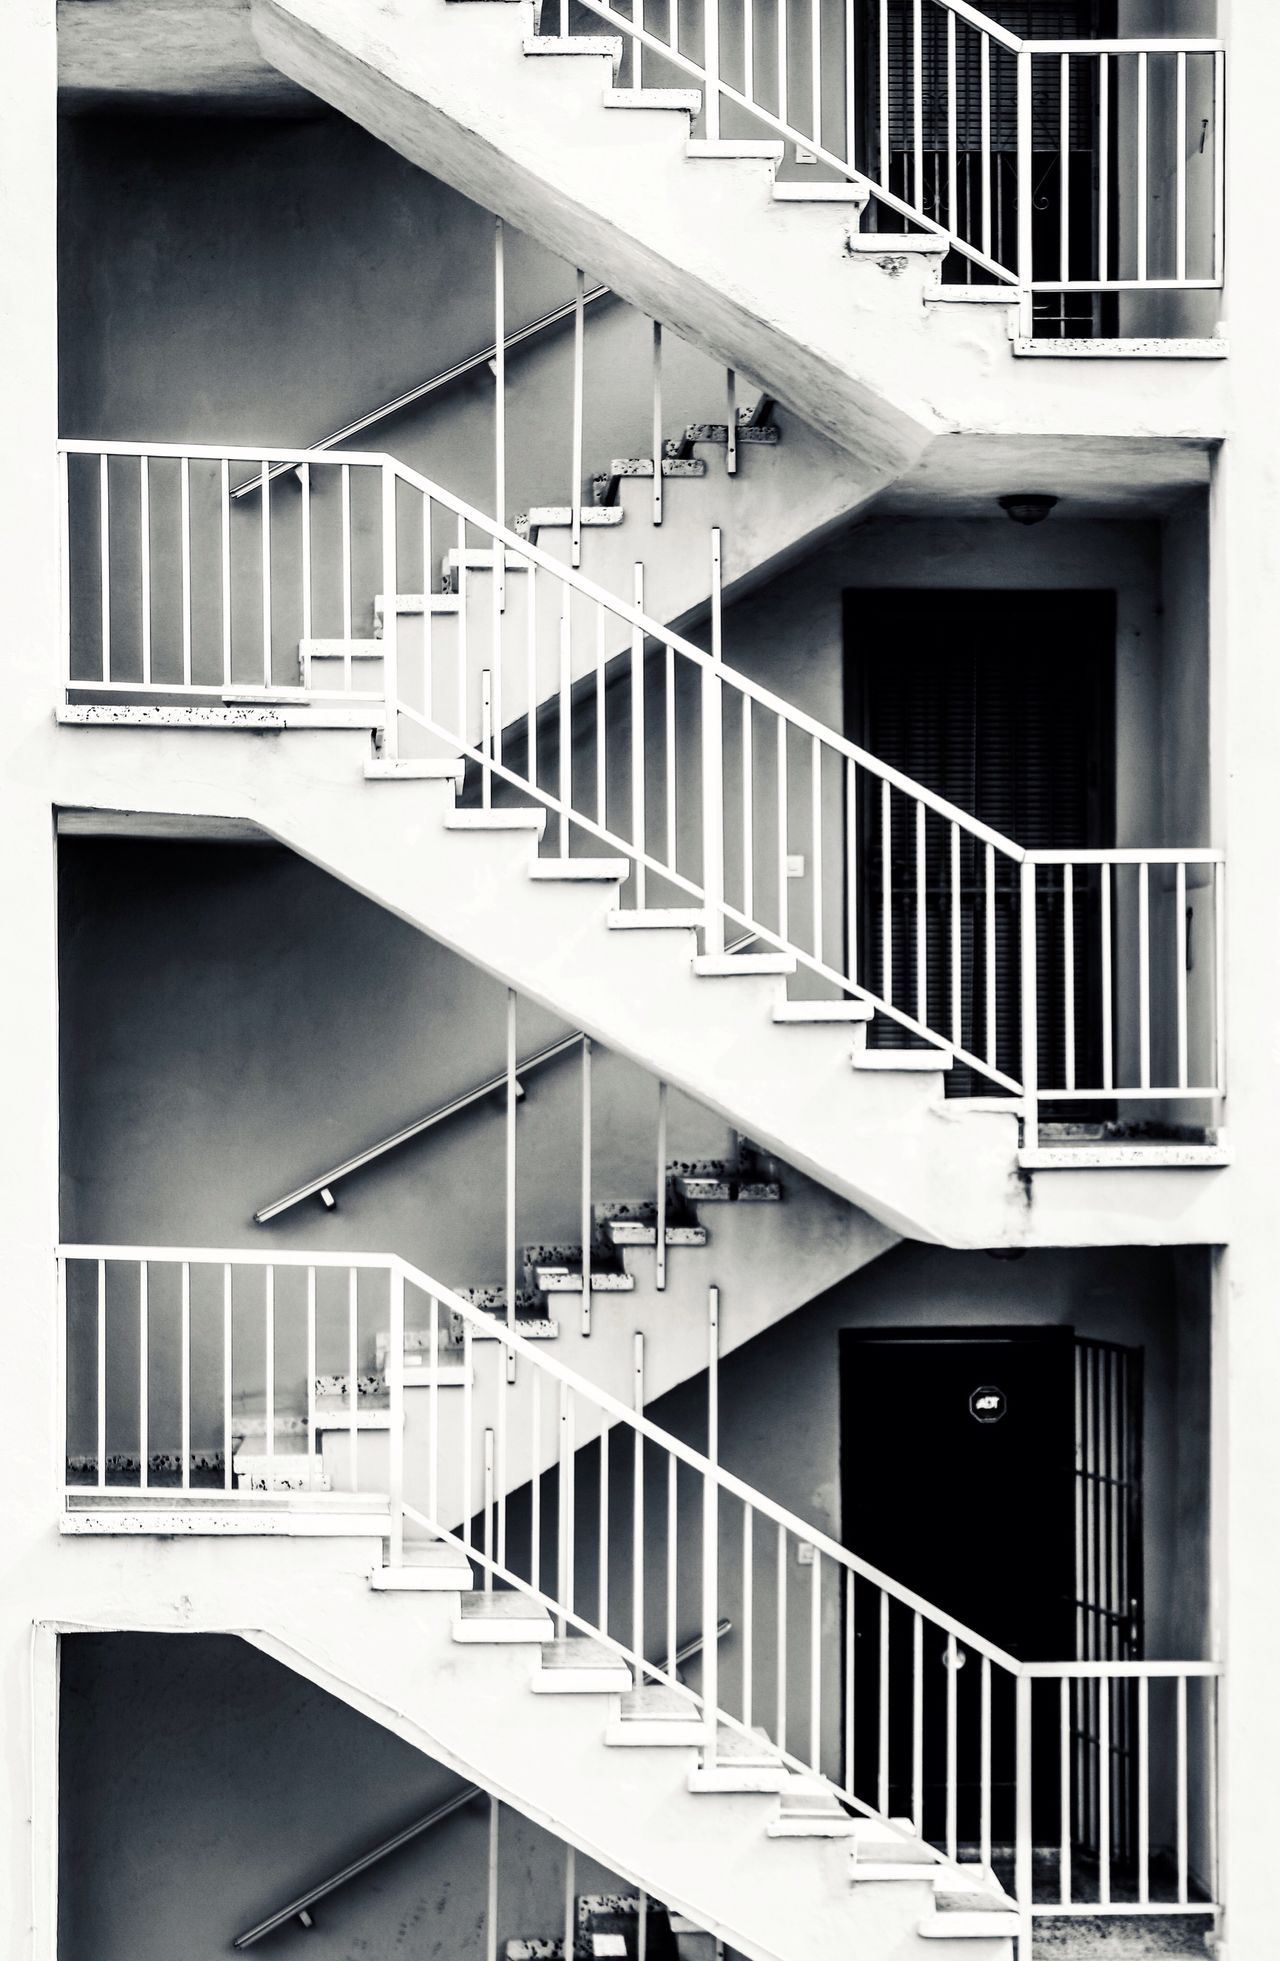 Architecture Built Structure Steps And Staircases Building Exterior Staircase Balcony Abstract Urban Stairs Blackandwhite